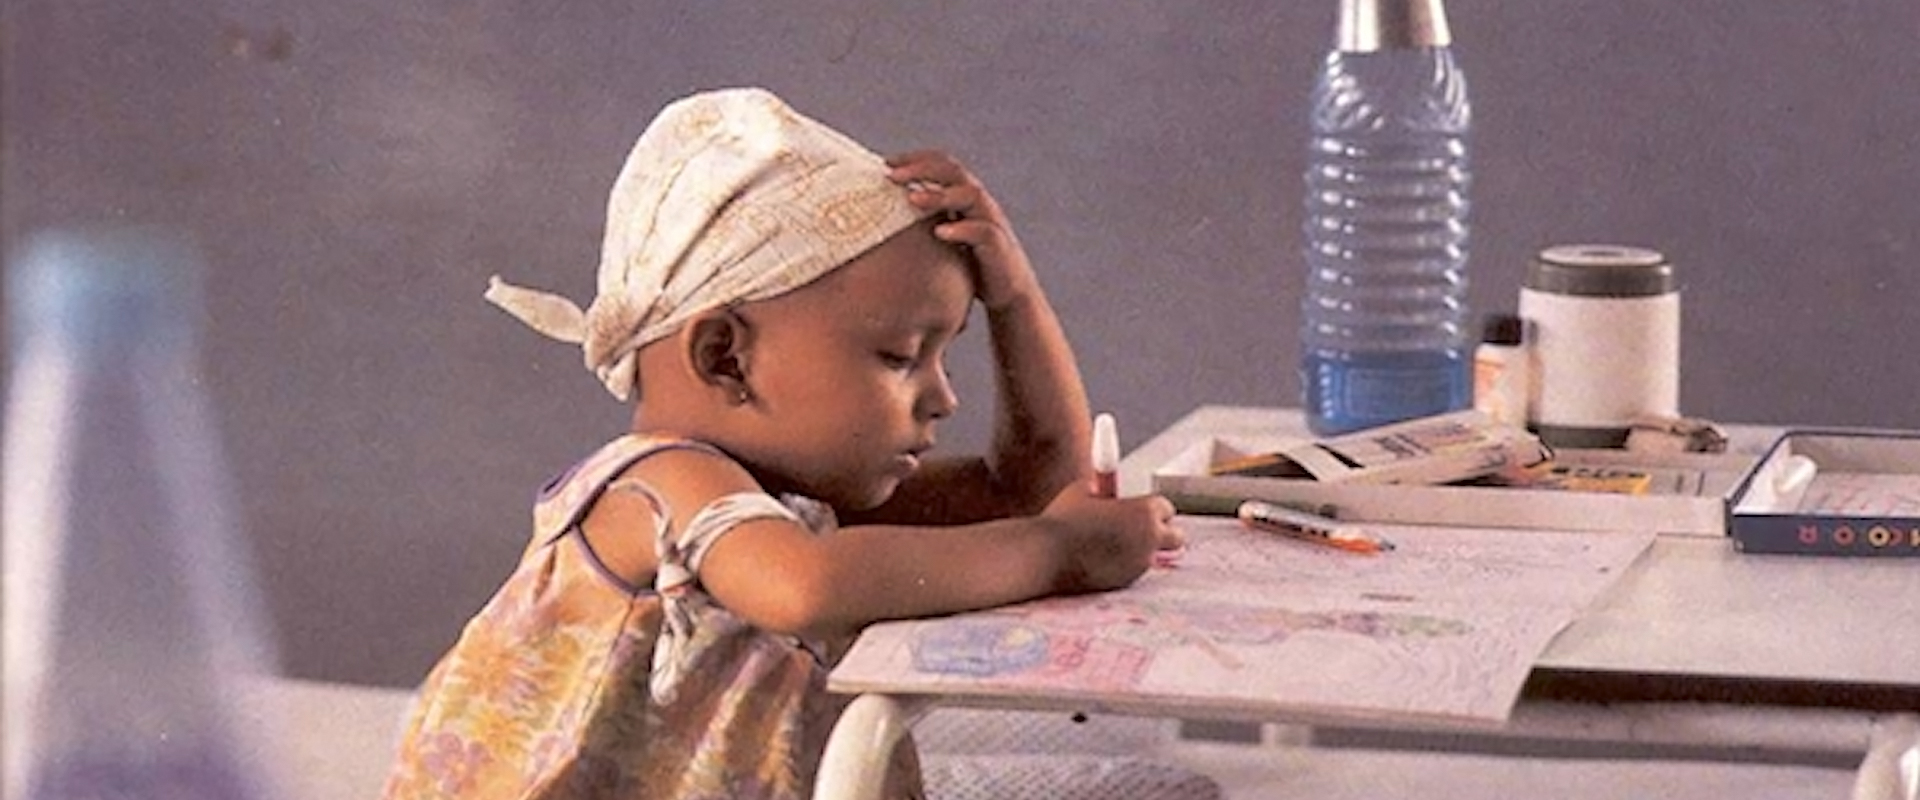 Girl Child Cancer Patient